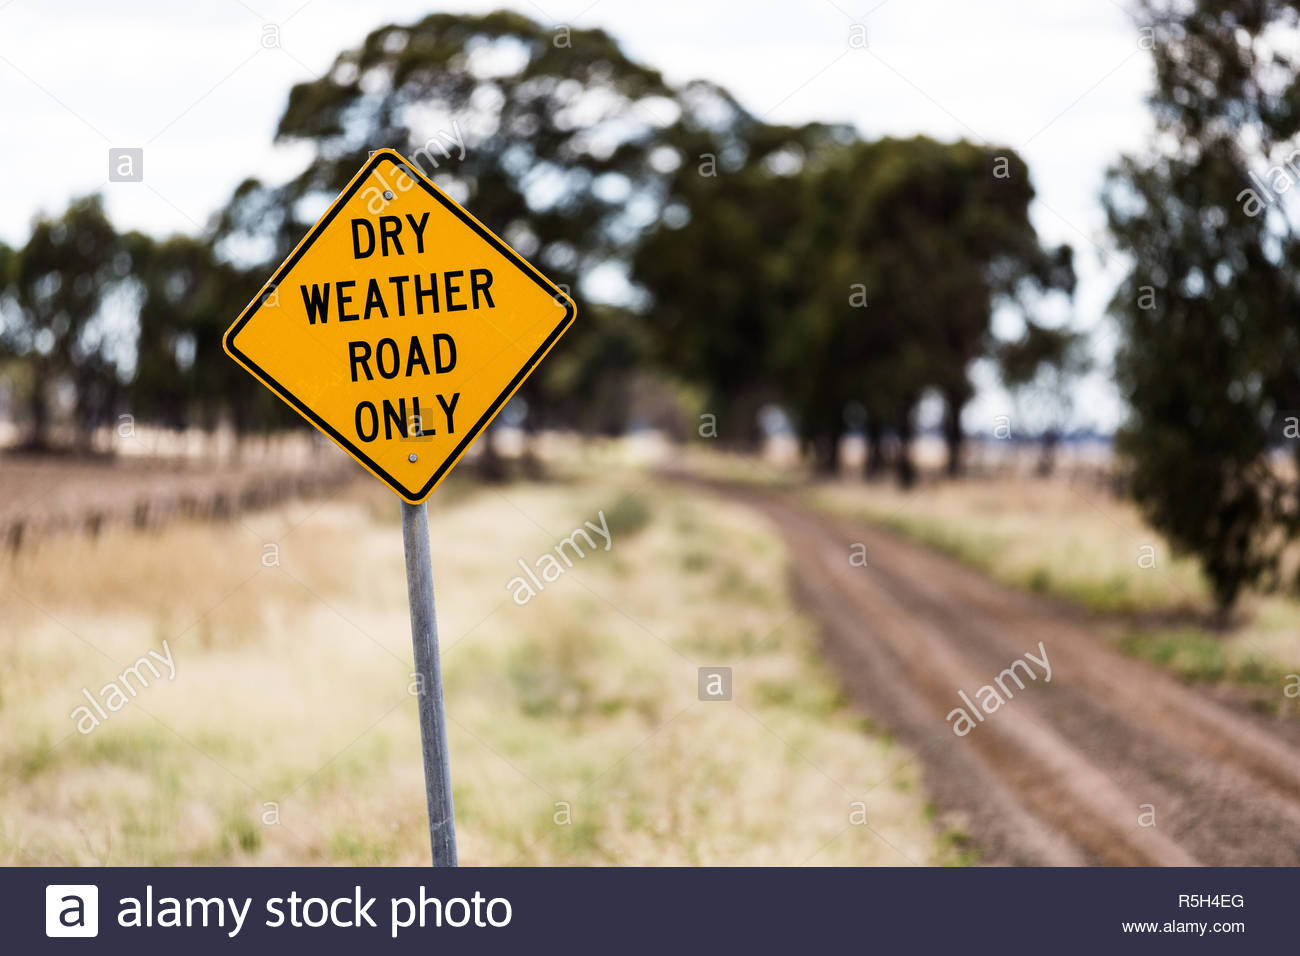 Dry weather only warning sign on a dirt road in rural Australia during drought conditions. - Stock Image